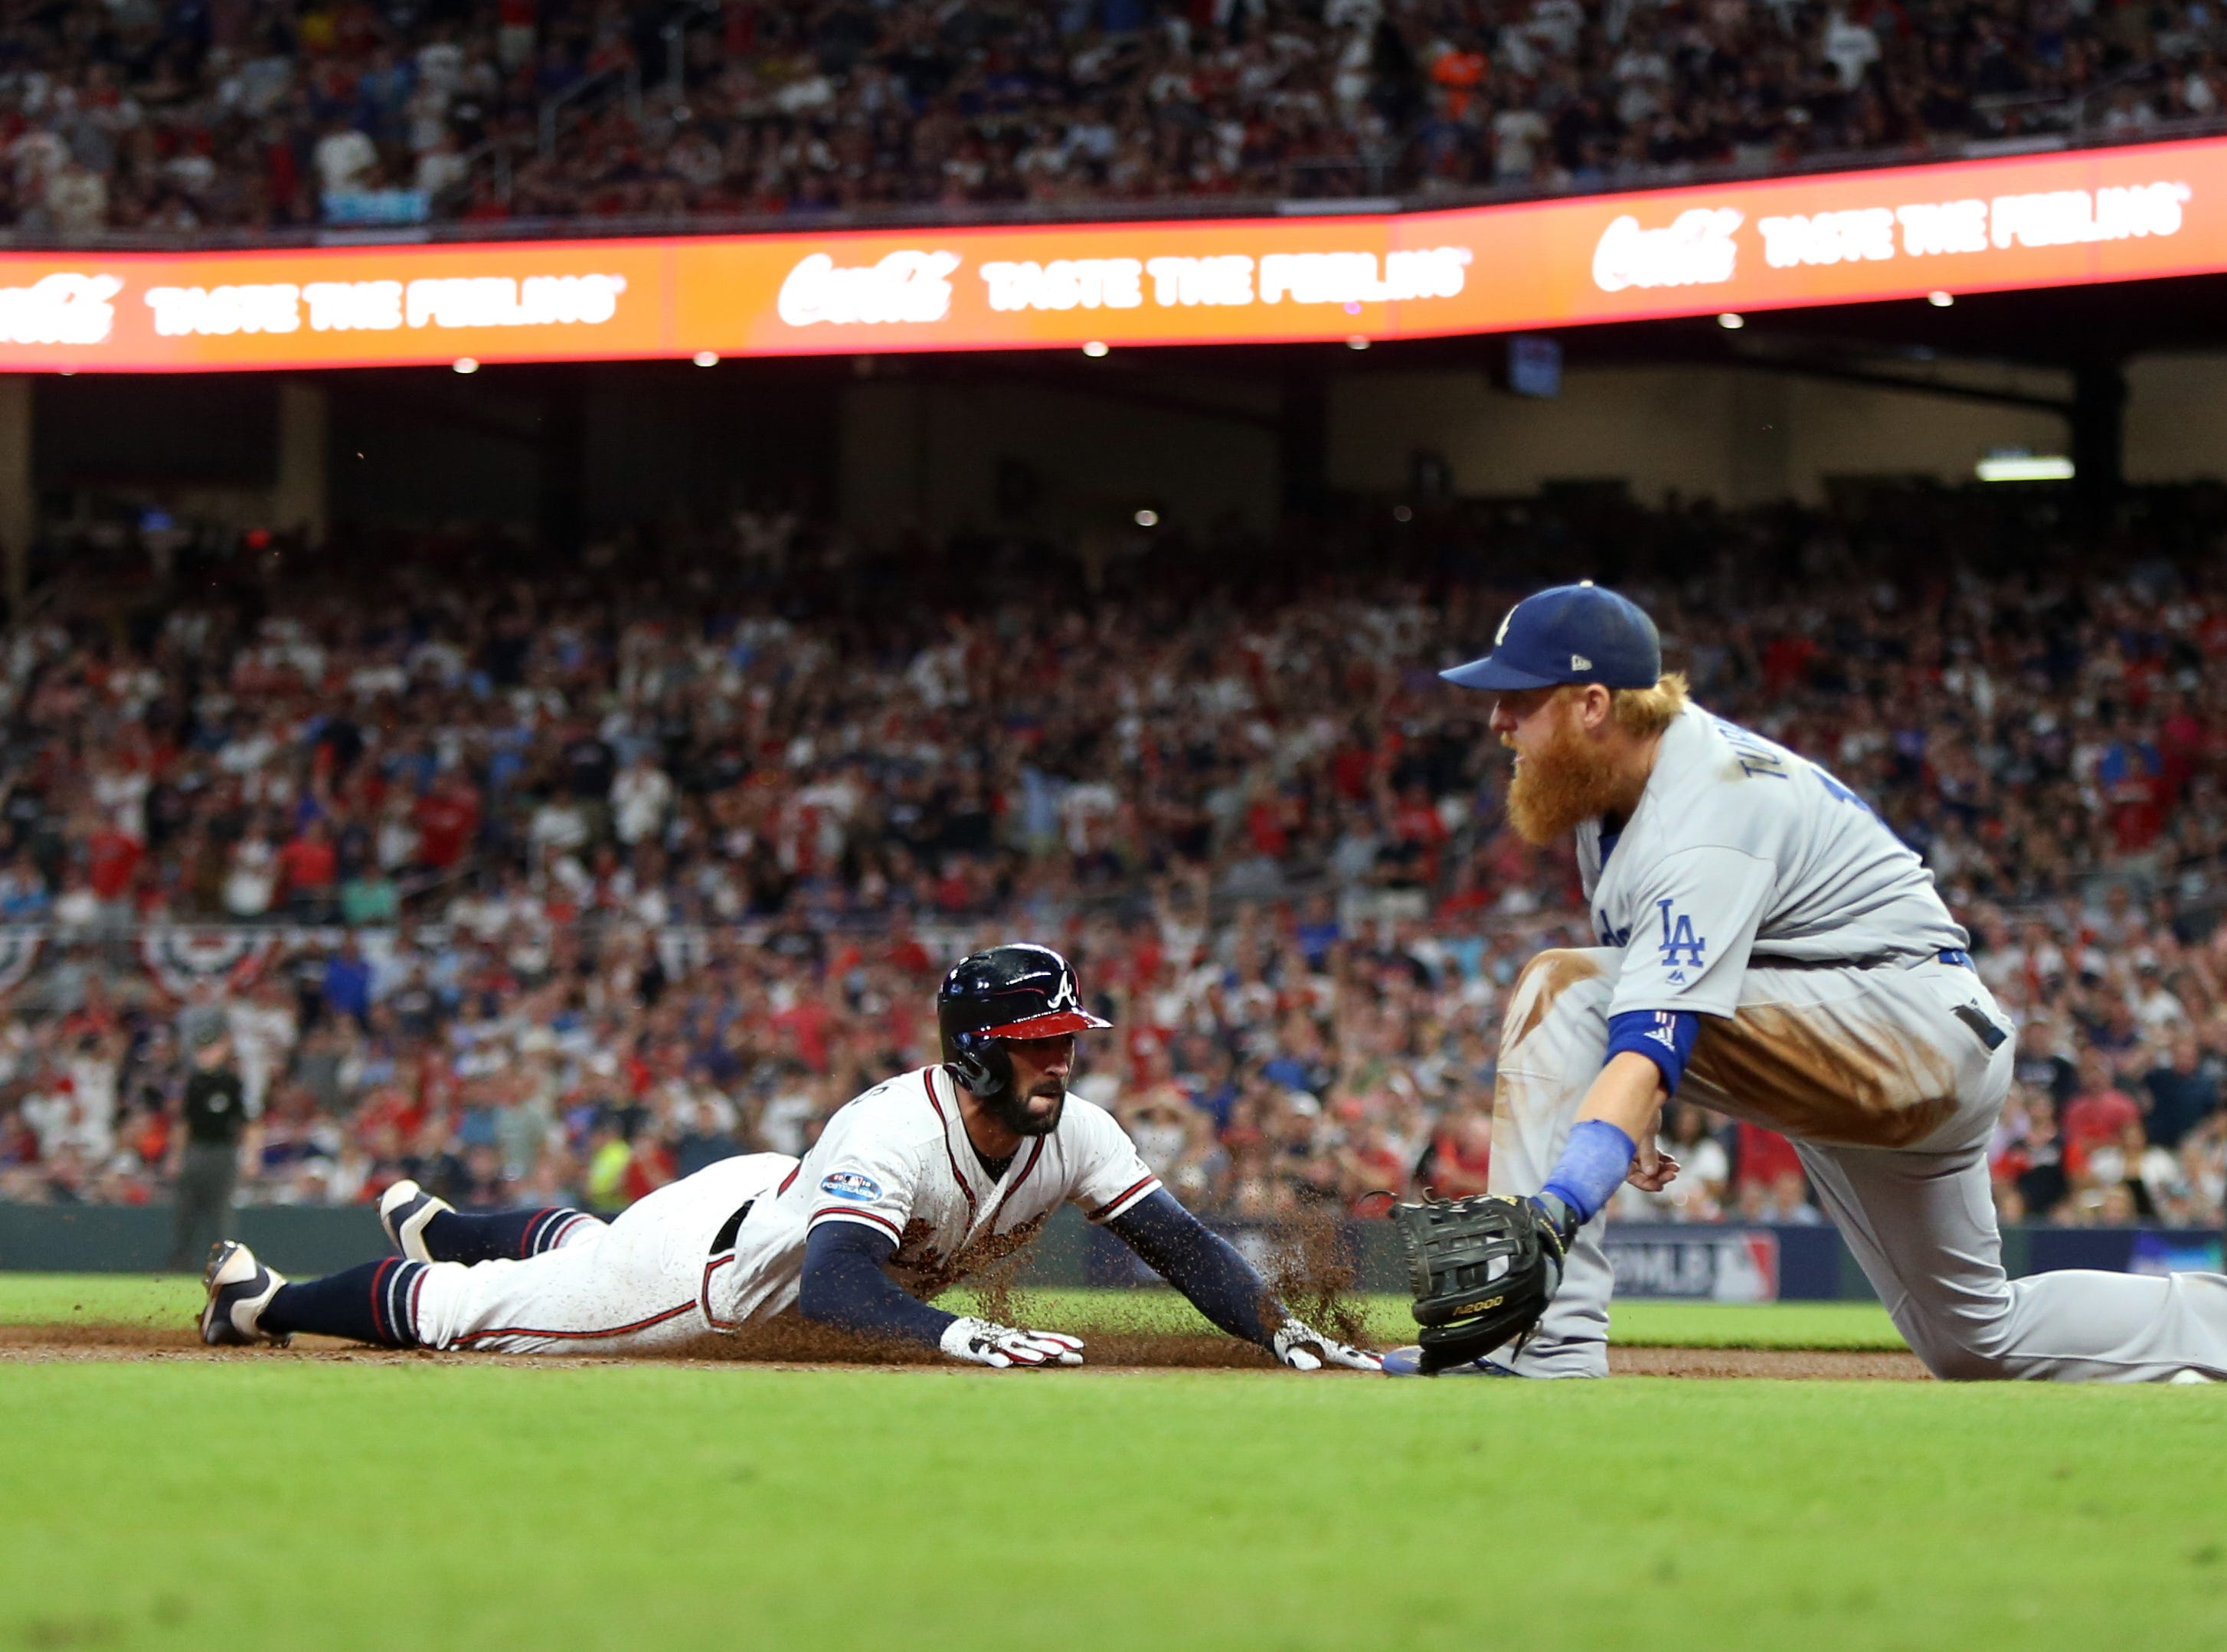 NLDS Game 3: Atlanta's Nick Markakis slides safely into third base in the second inning.